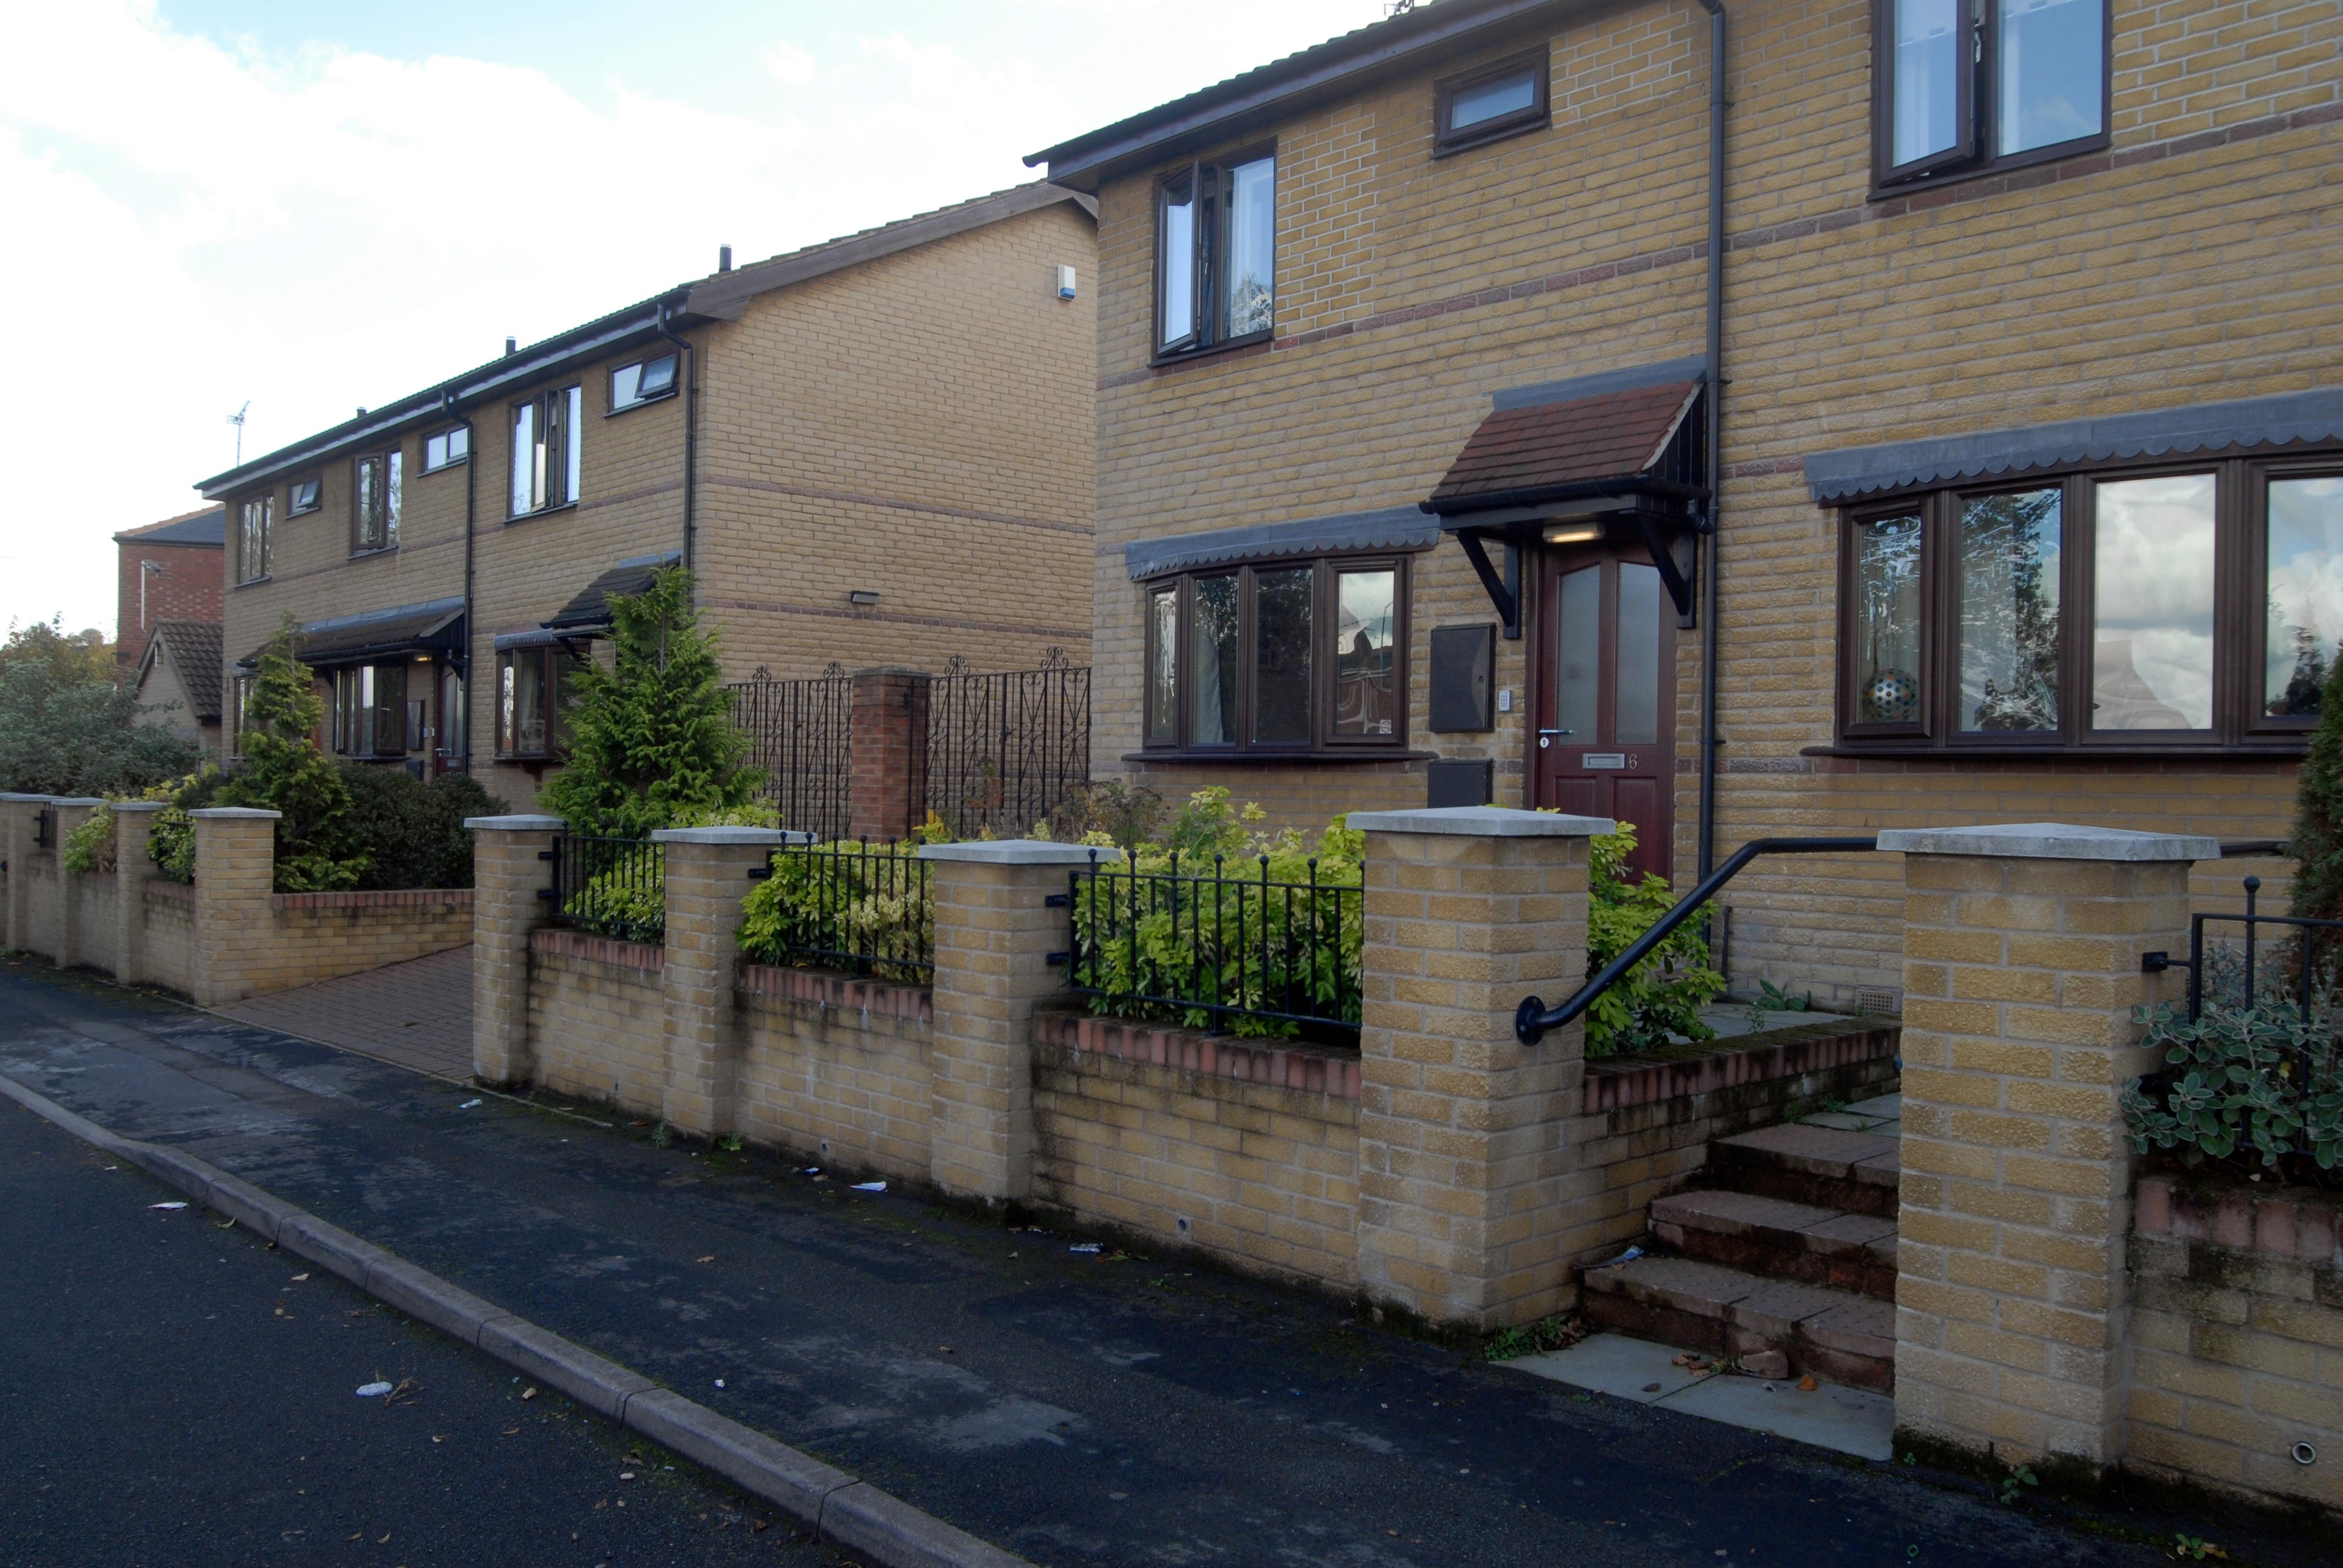 Stainton Street accommodation